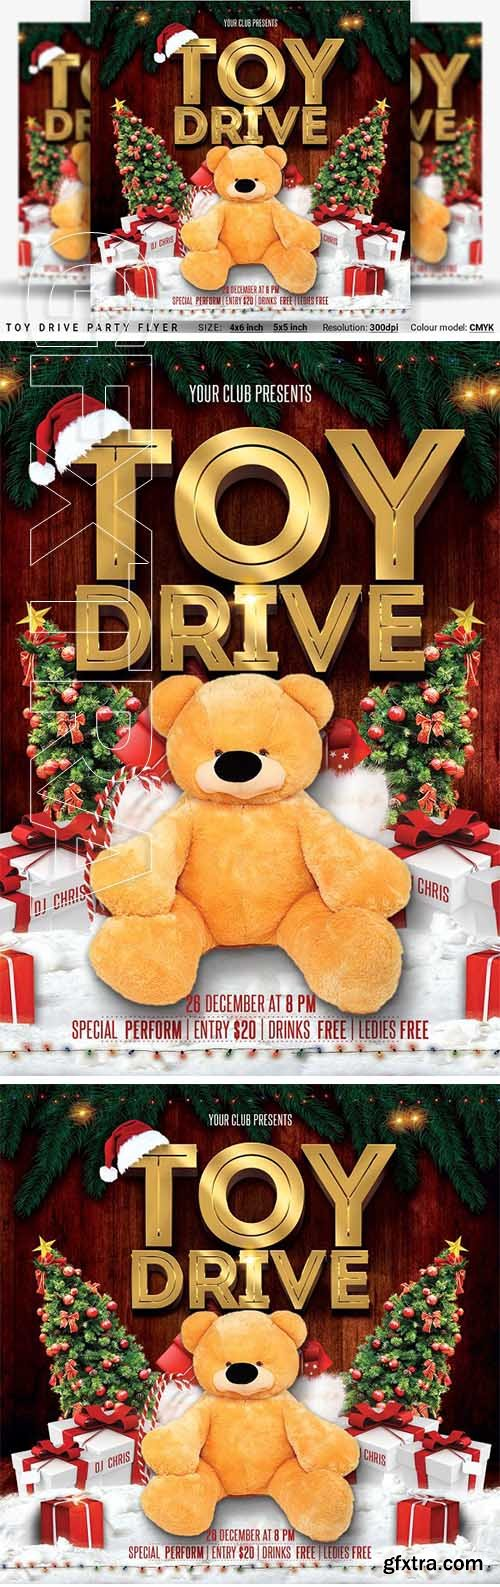 CreativeMarket - Toy Drive Party Flyer 3248281